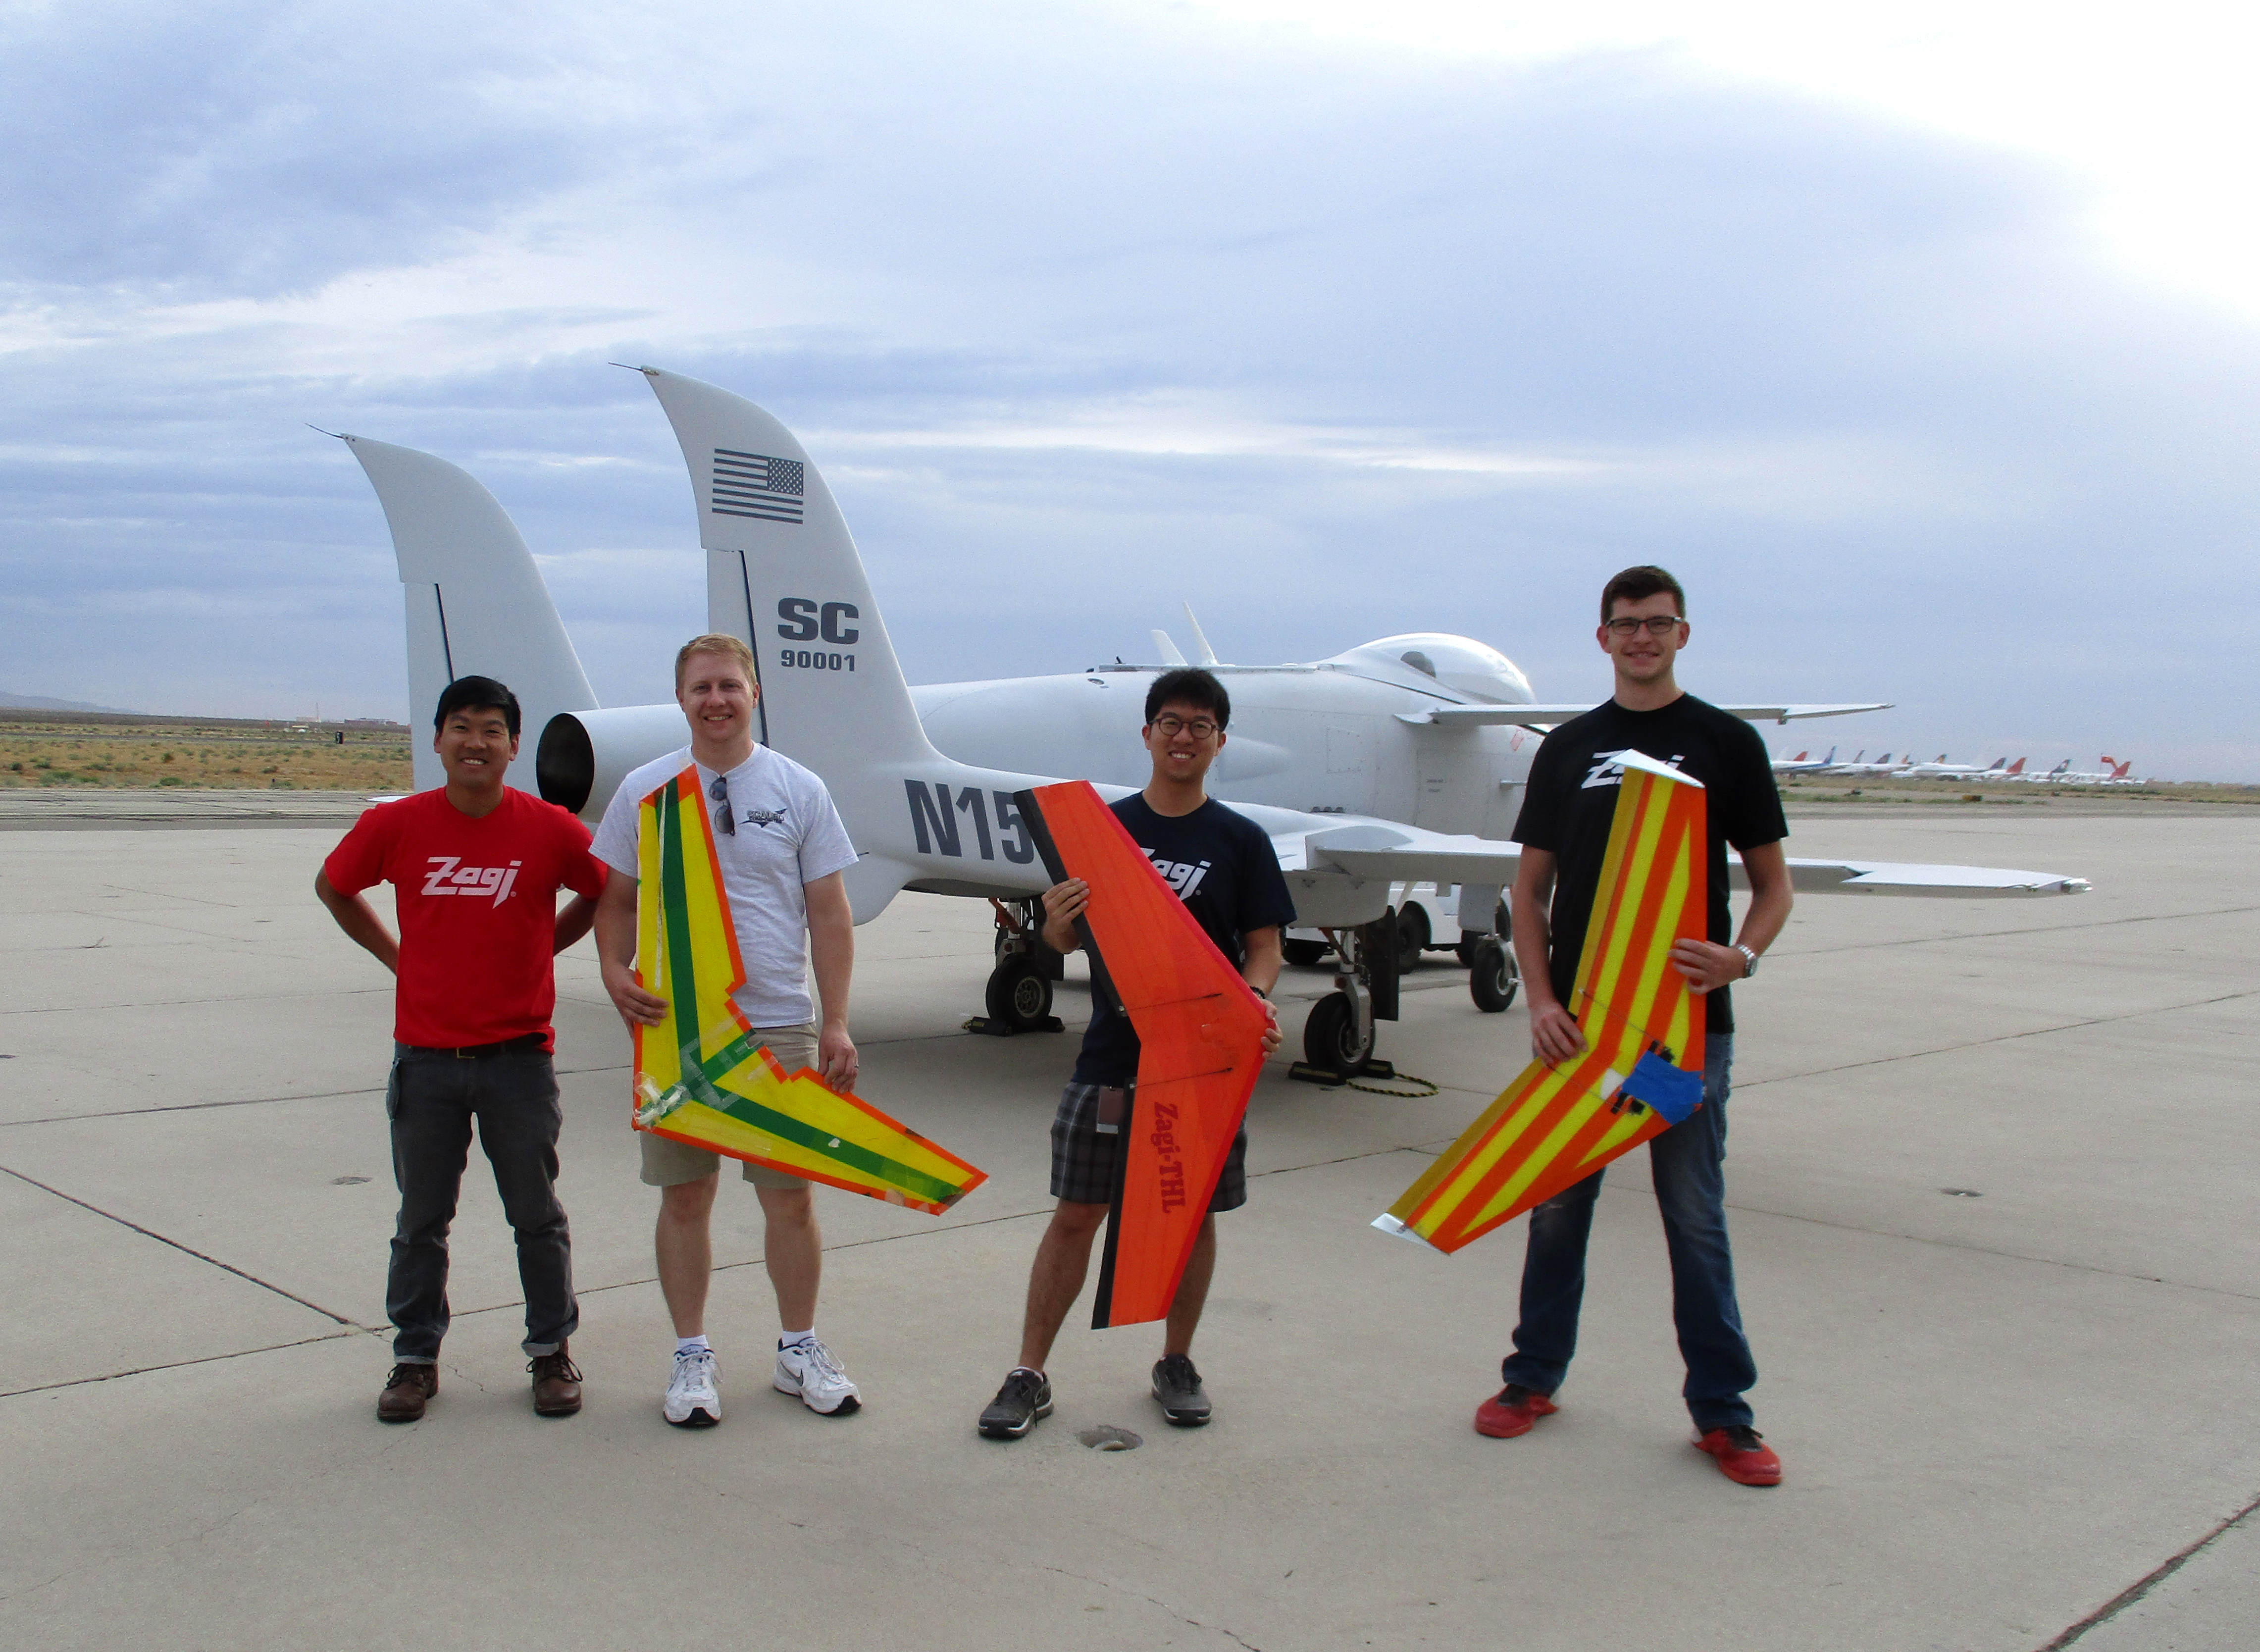 Scaled Composites flies Zagi!